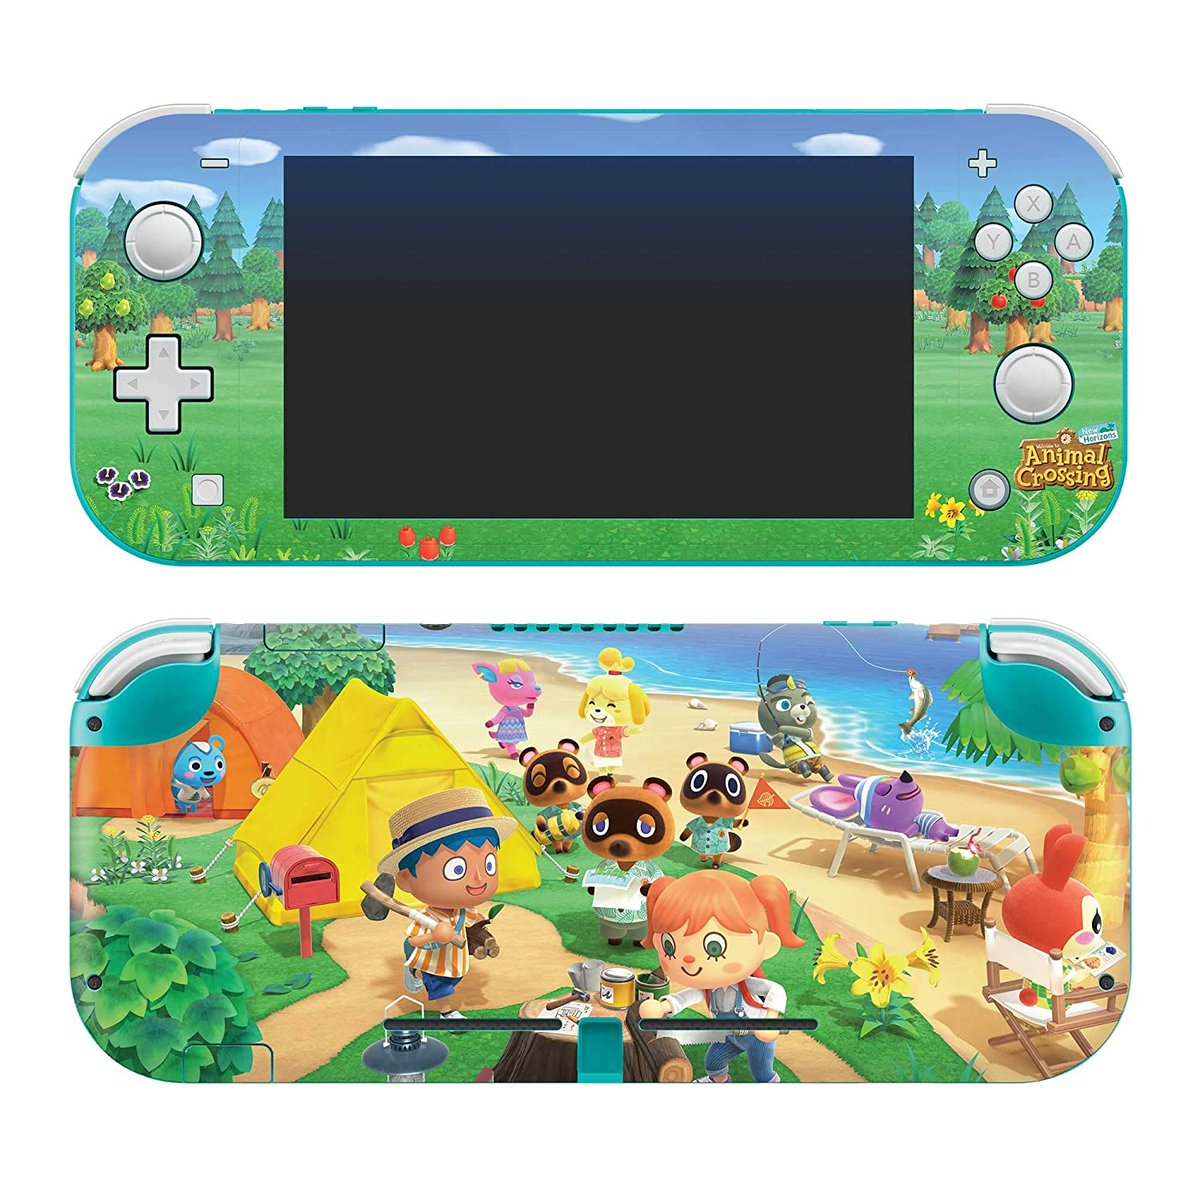 Nintendo Wire On Twitter The Animal Crossing New Horizons On